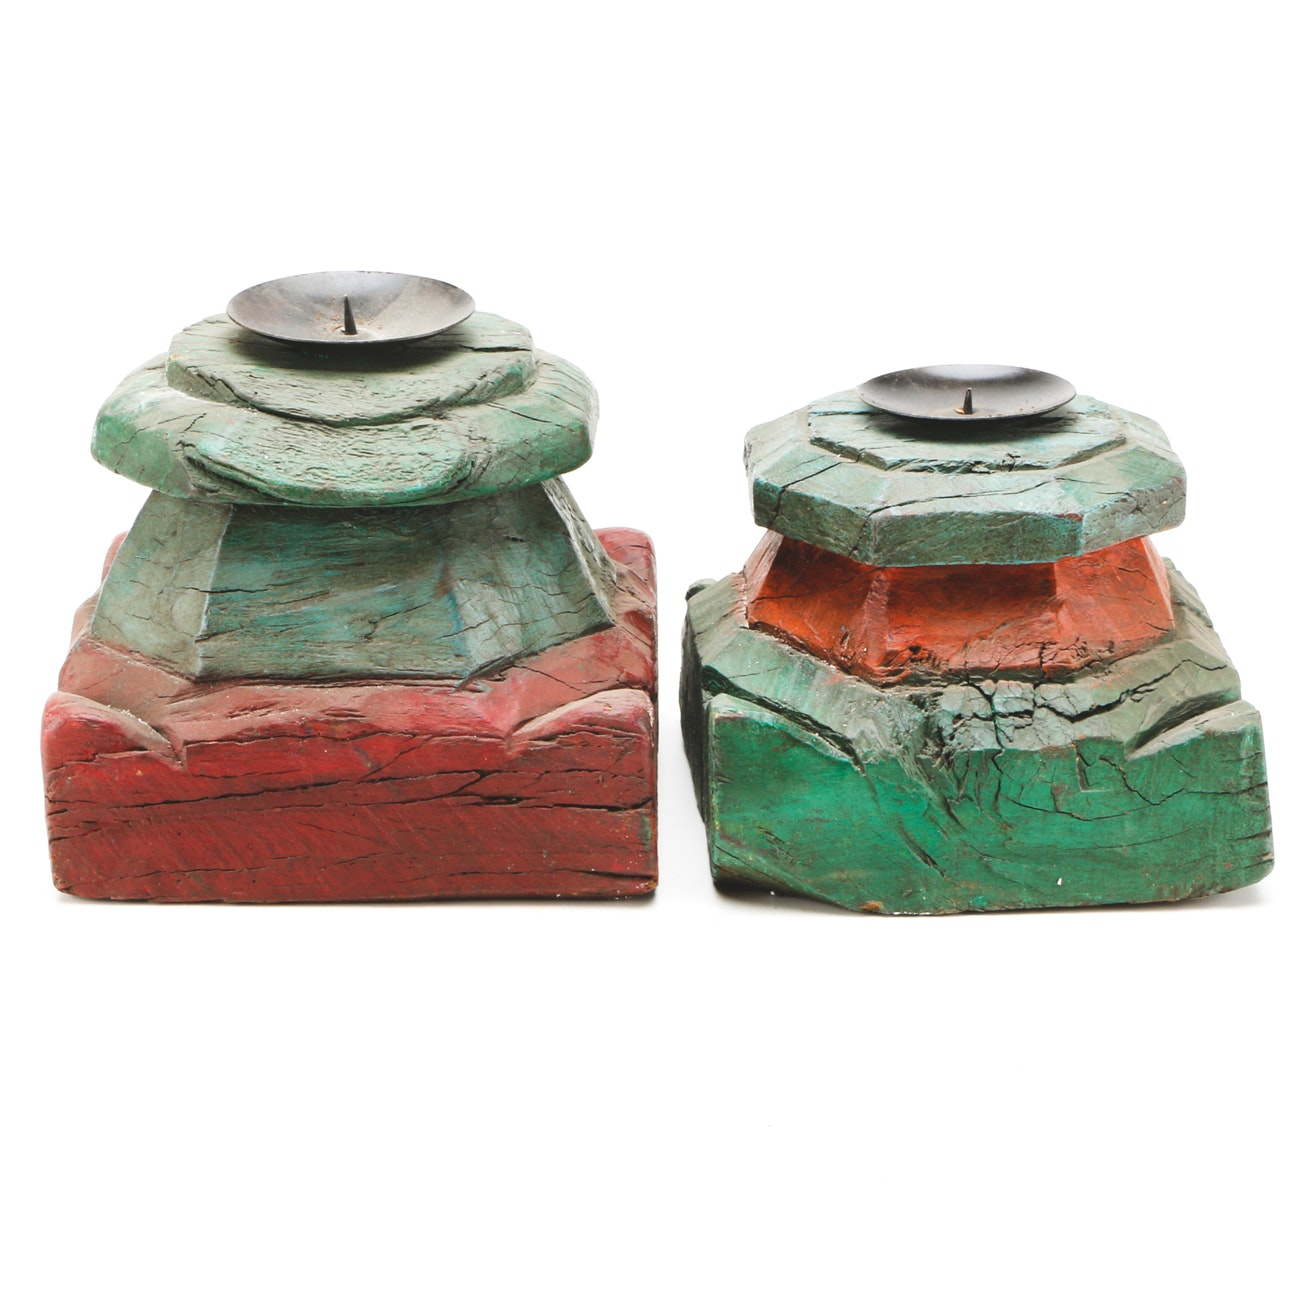 Converted Pricket Candleholders from Painted Column Bases